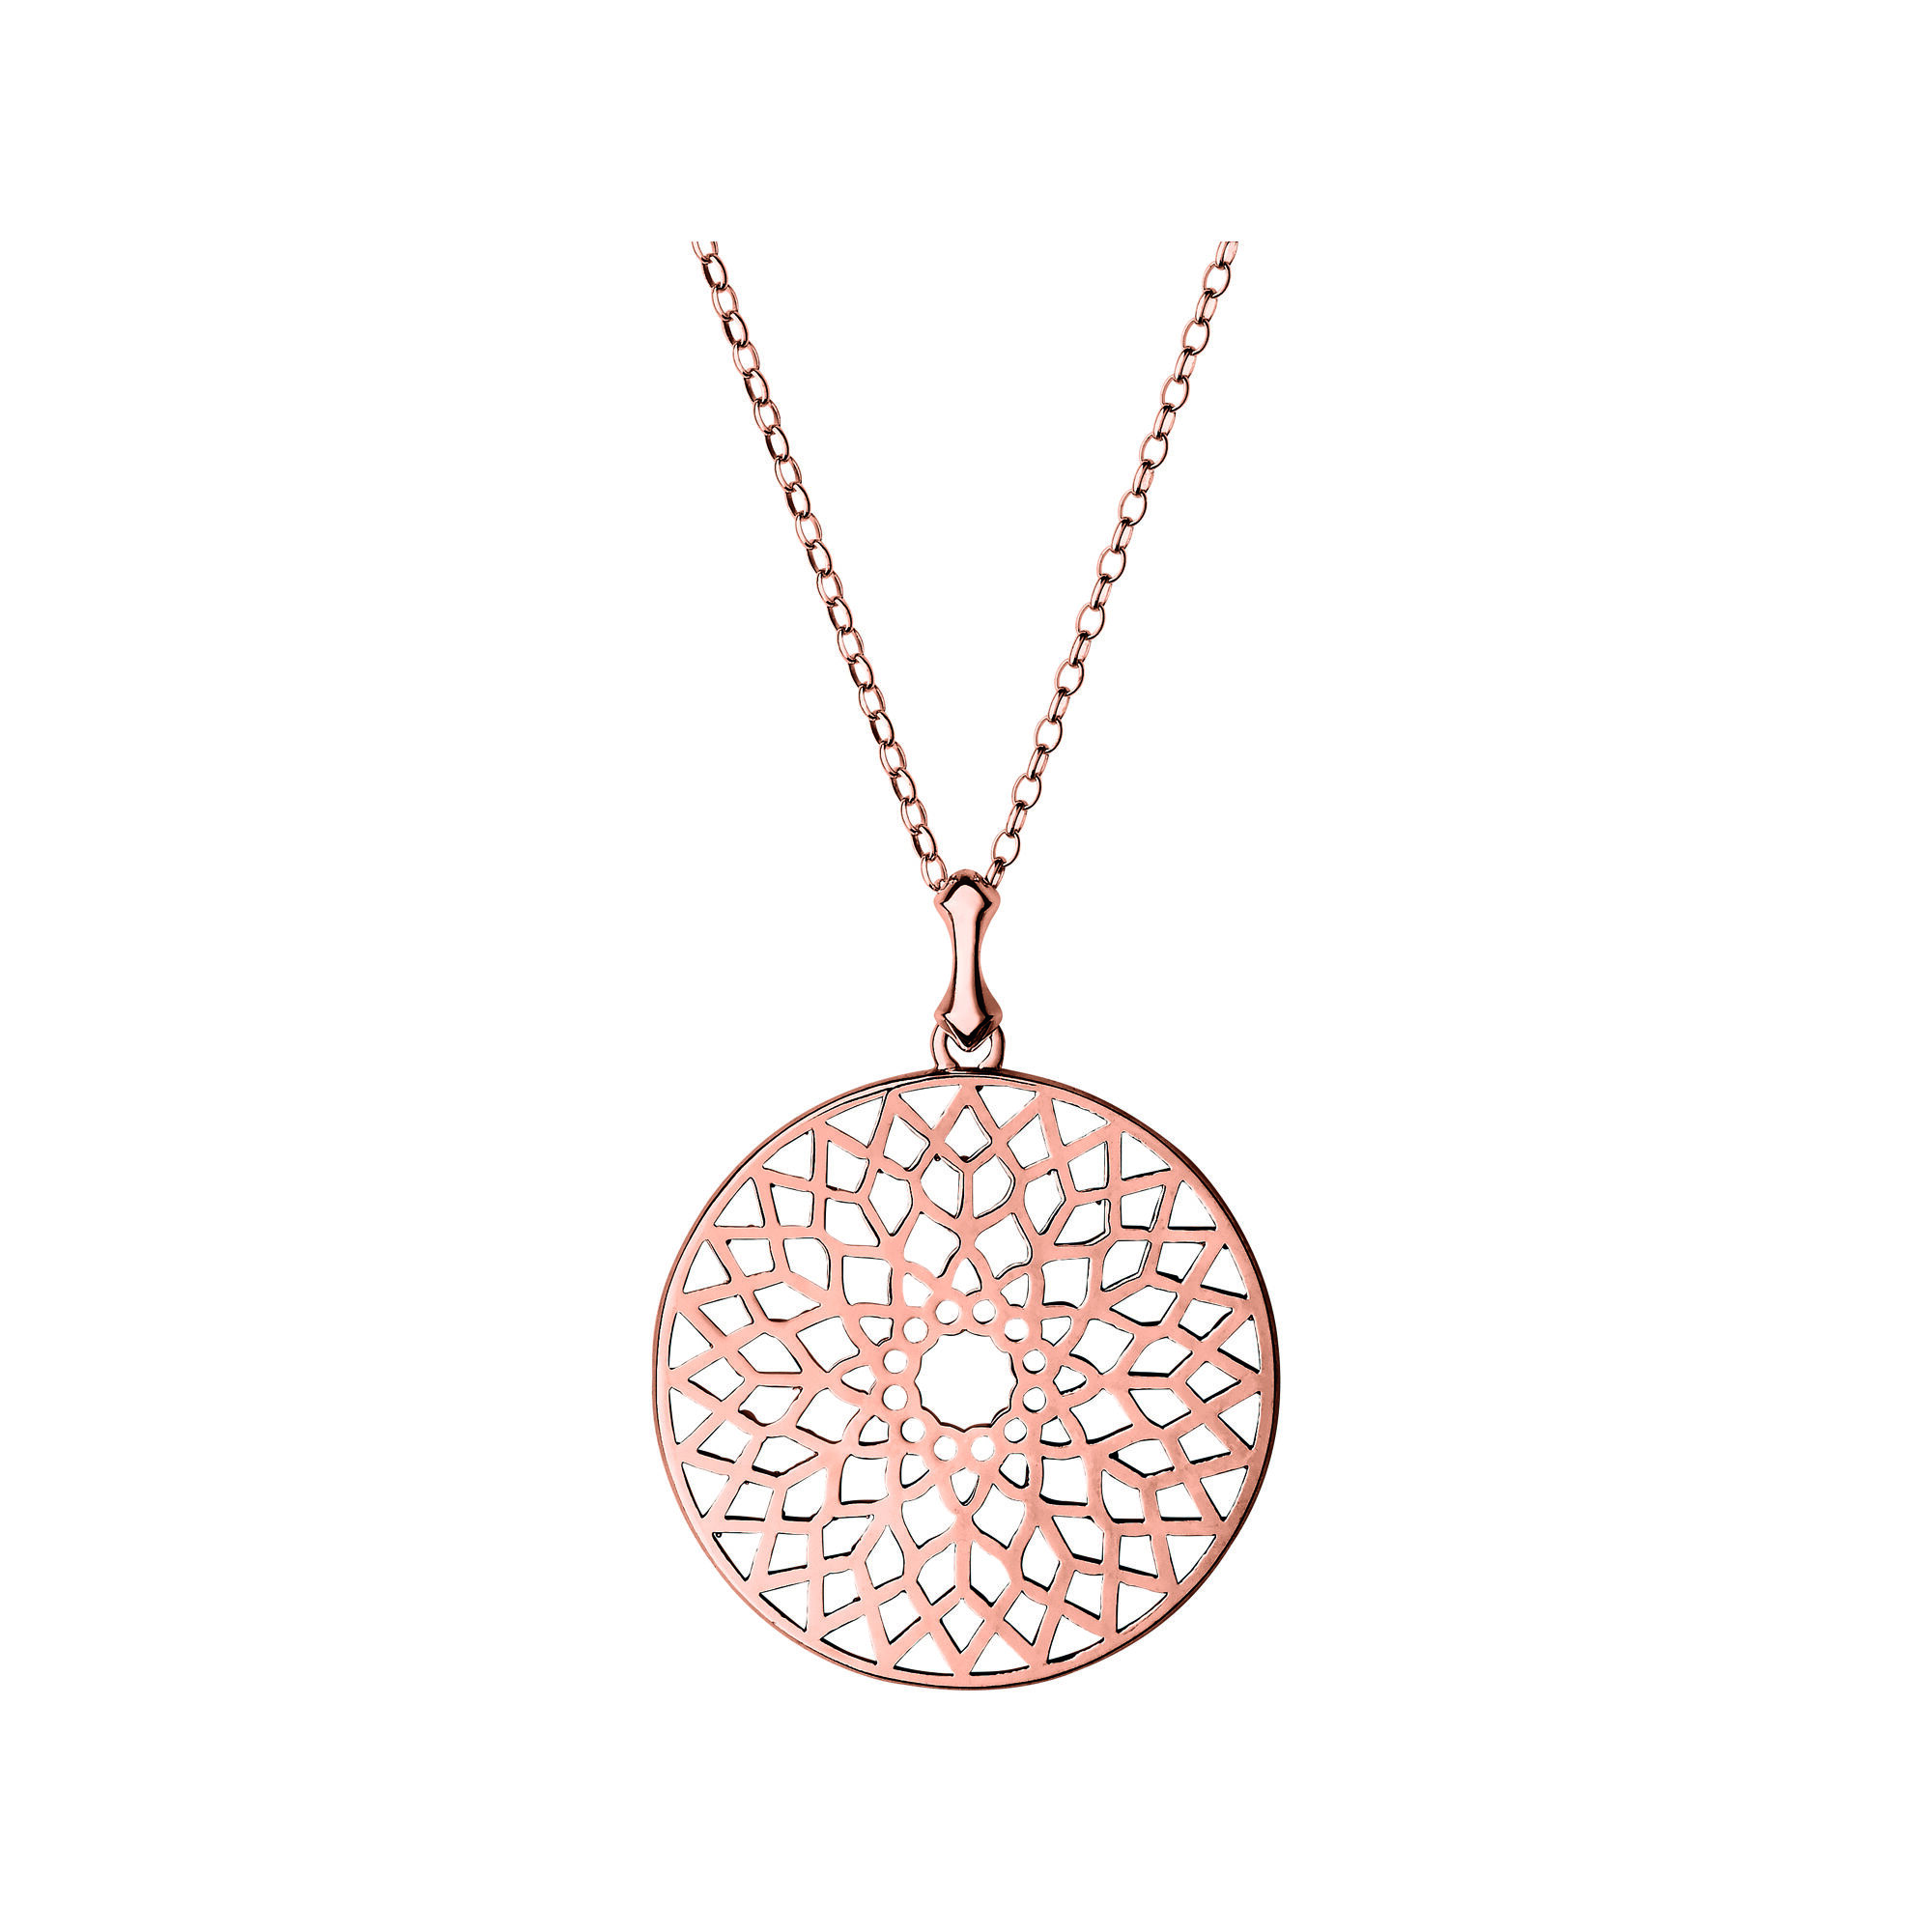 small london links of necklace vermeil gold timeless hires eu en rose